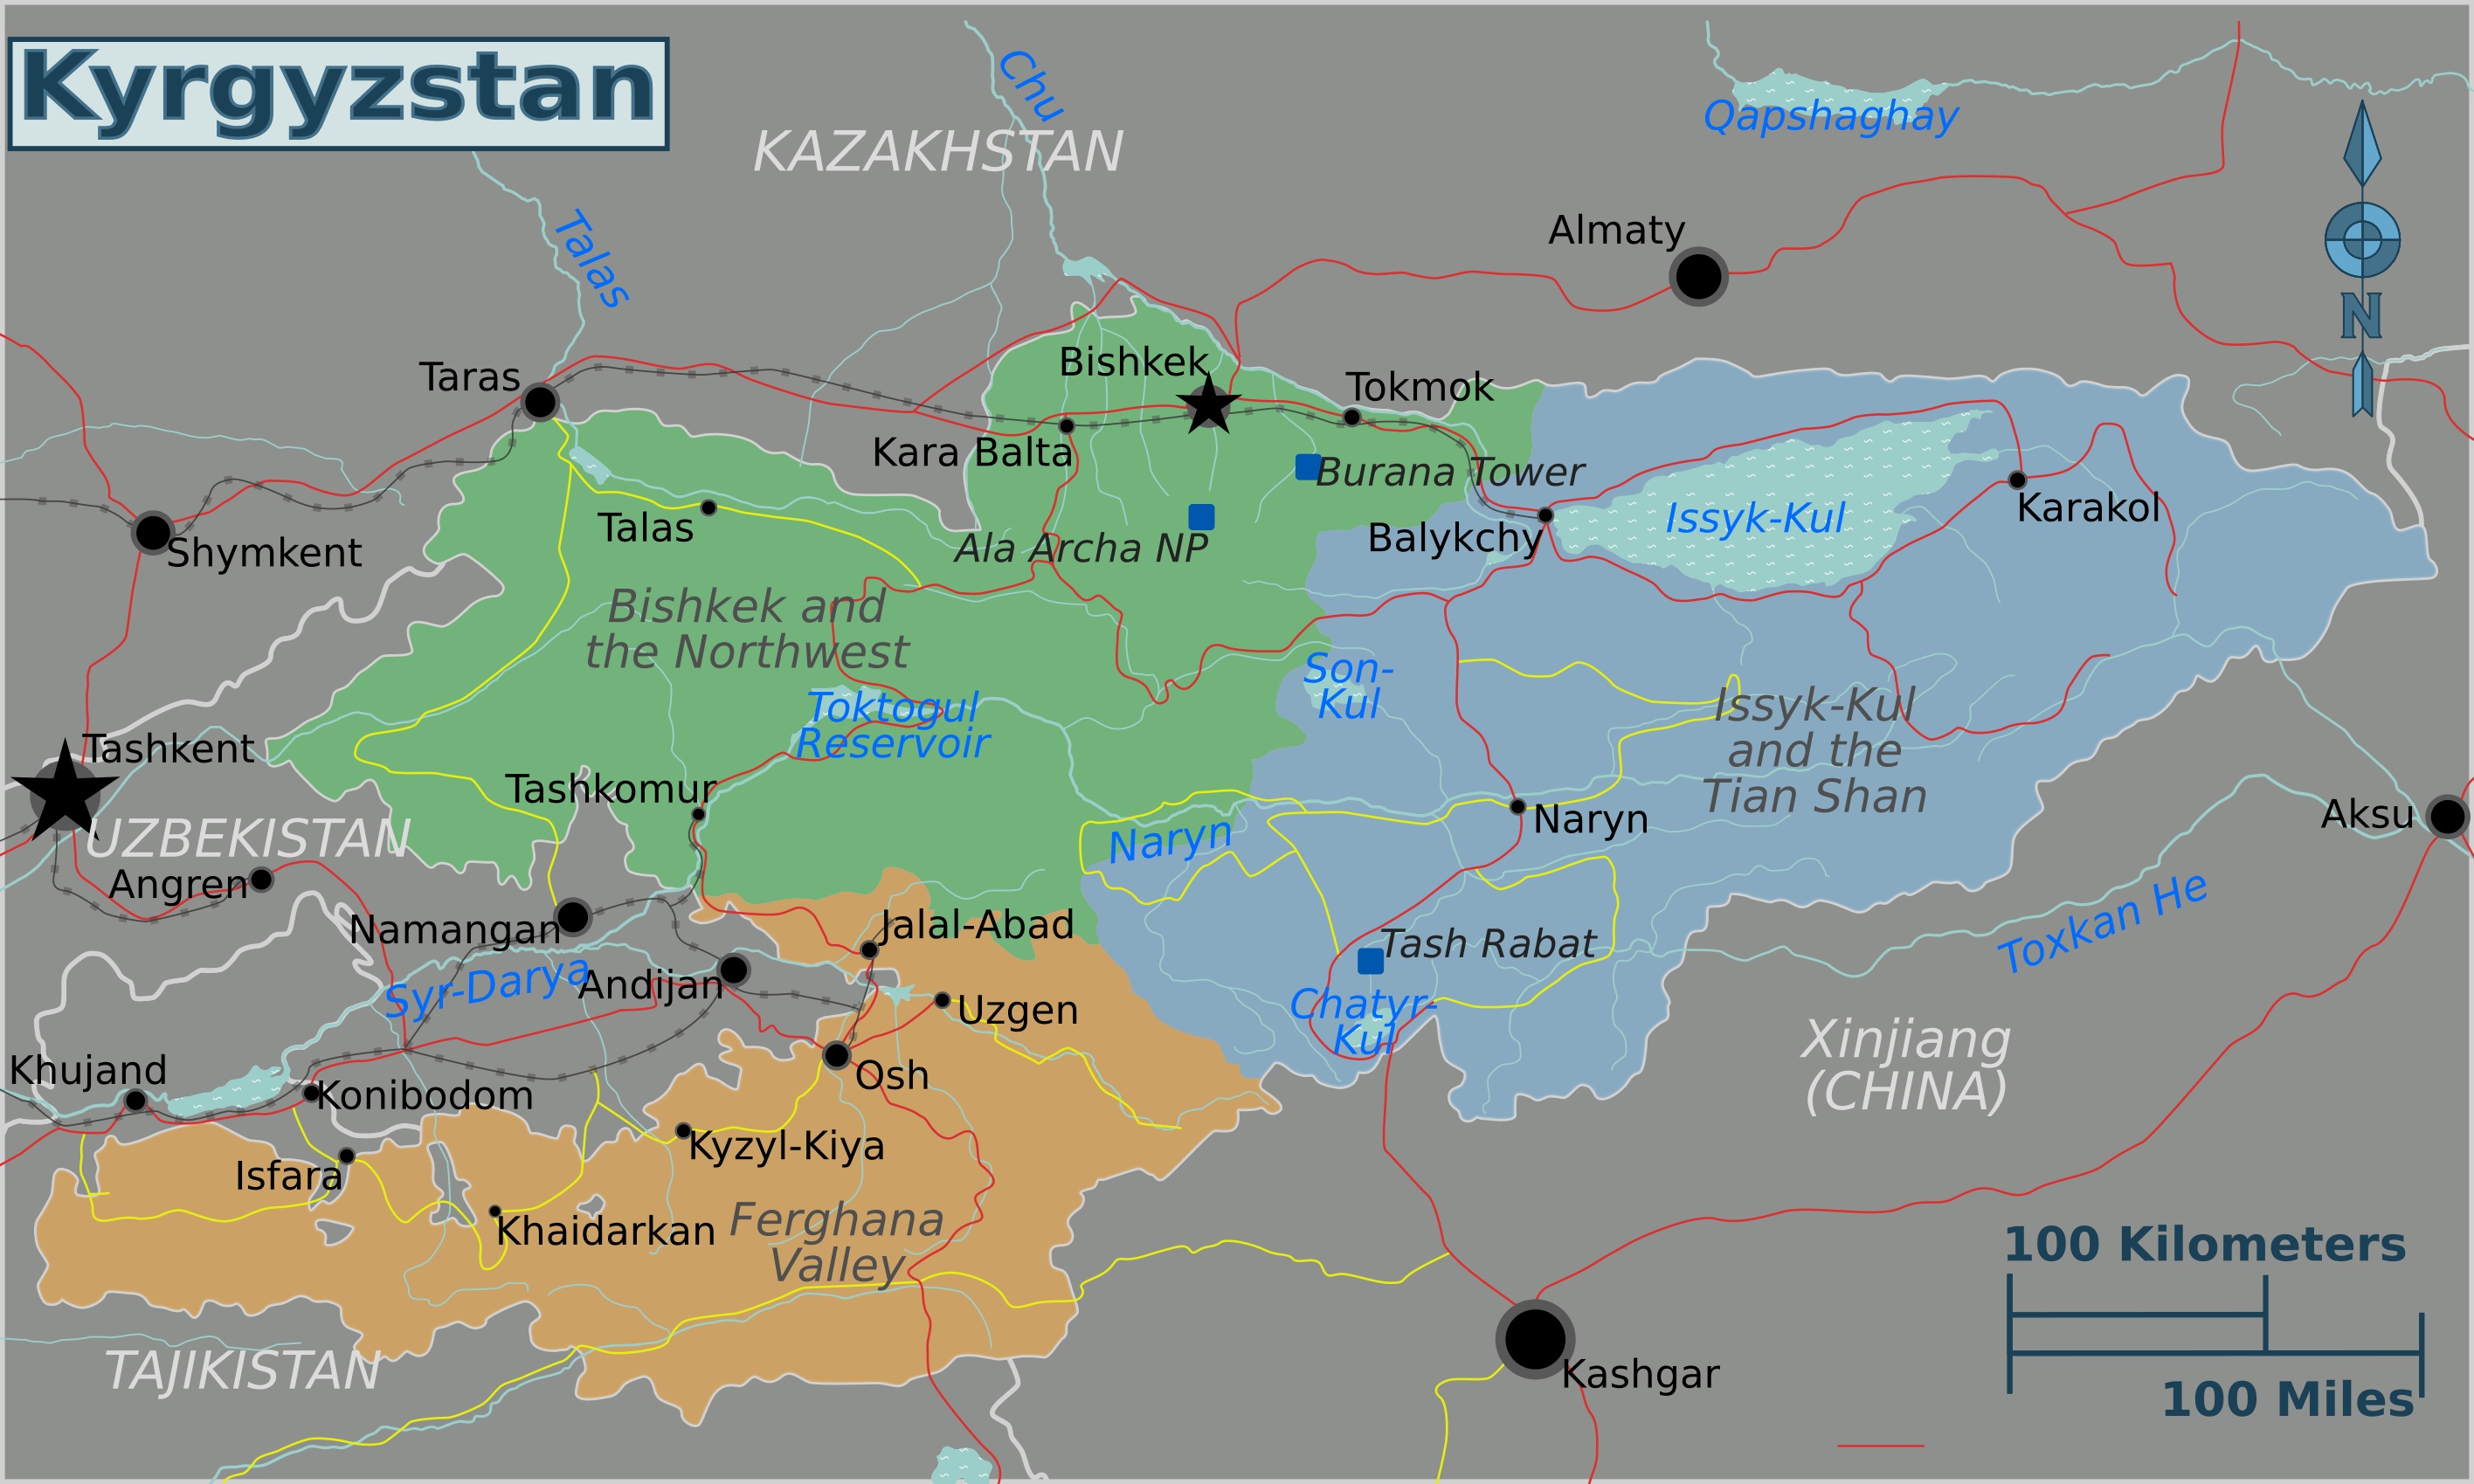 FileKyrgyzstan regions mappng  Wikimedia Commons